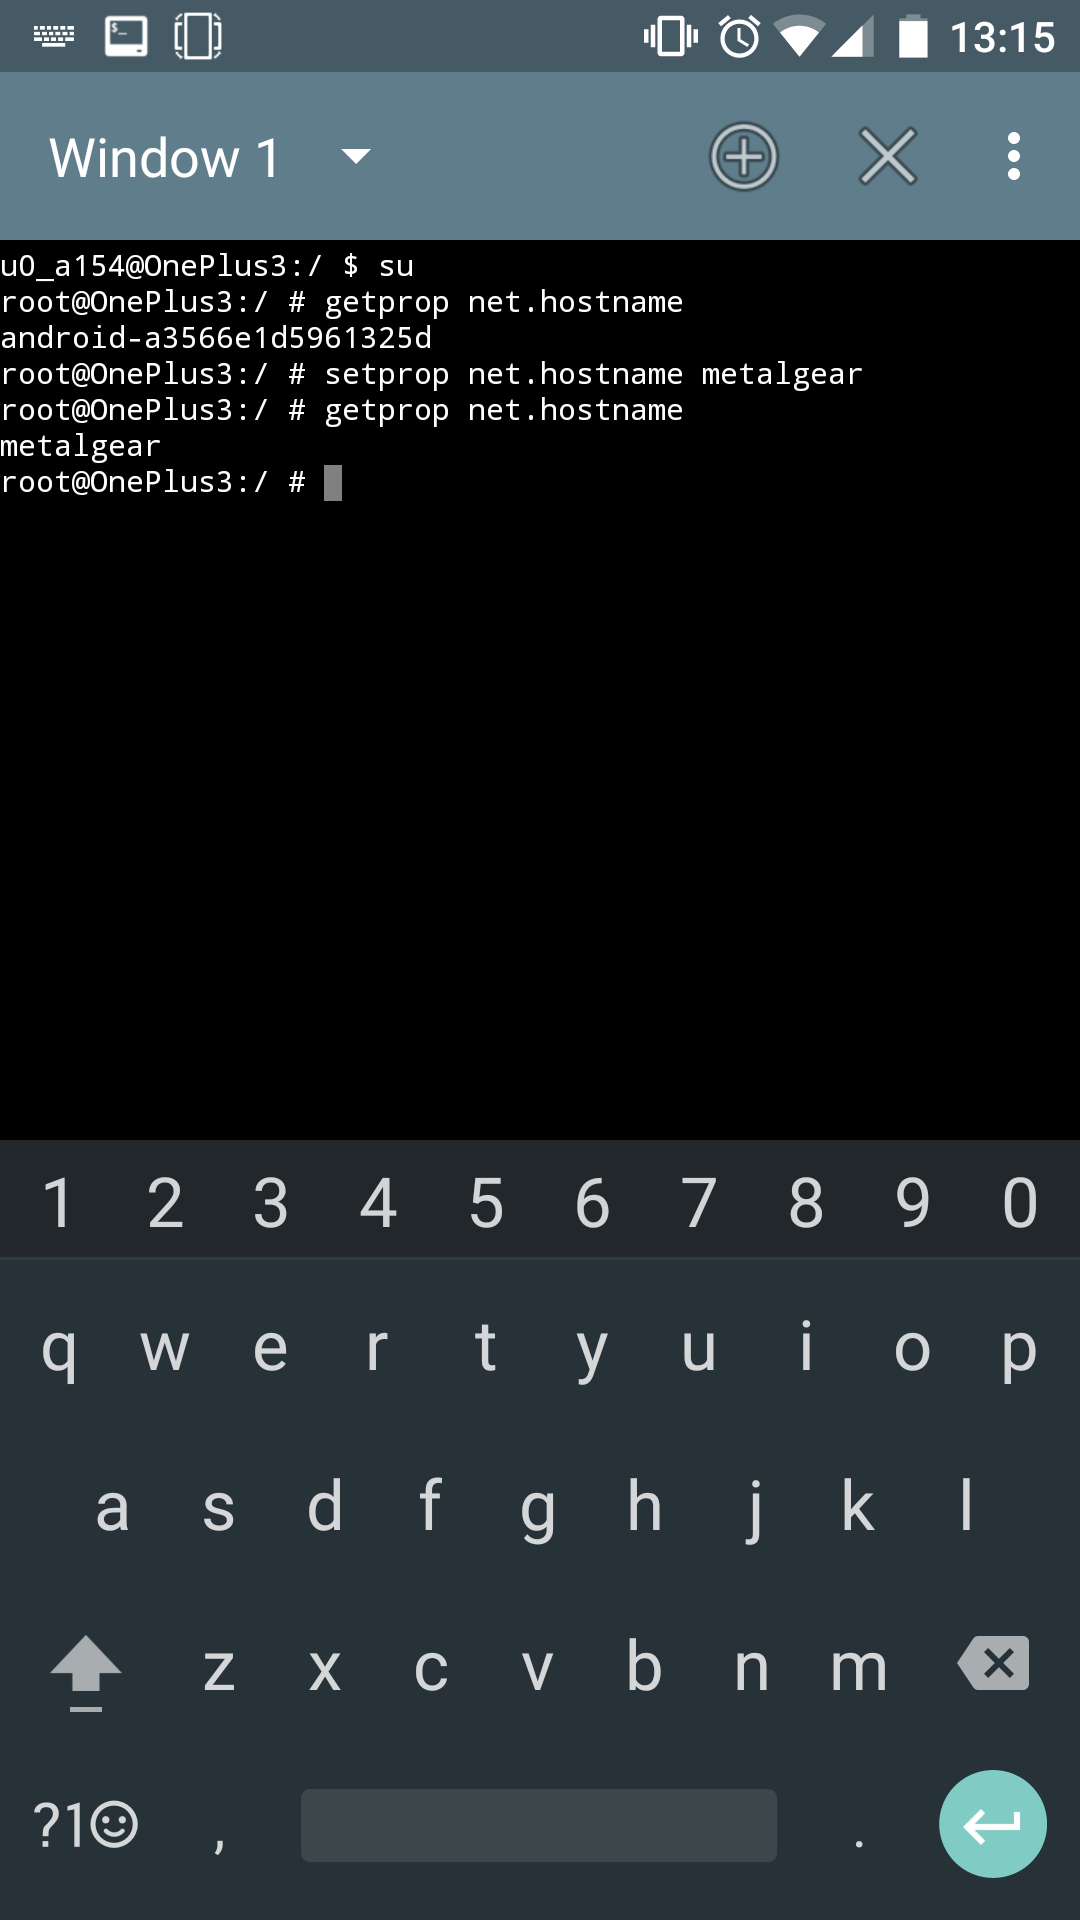 Set Hostname on Android M (6 0 1)